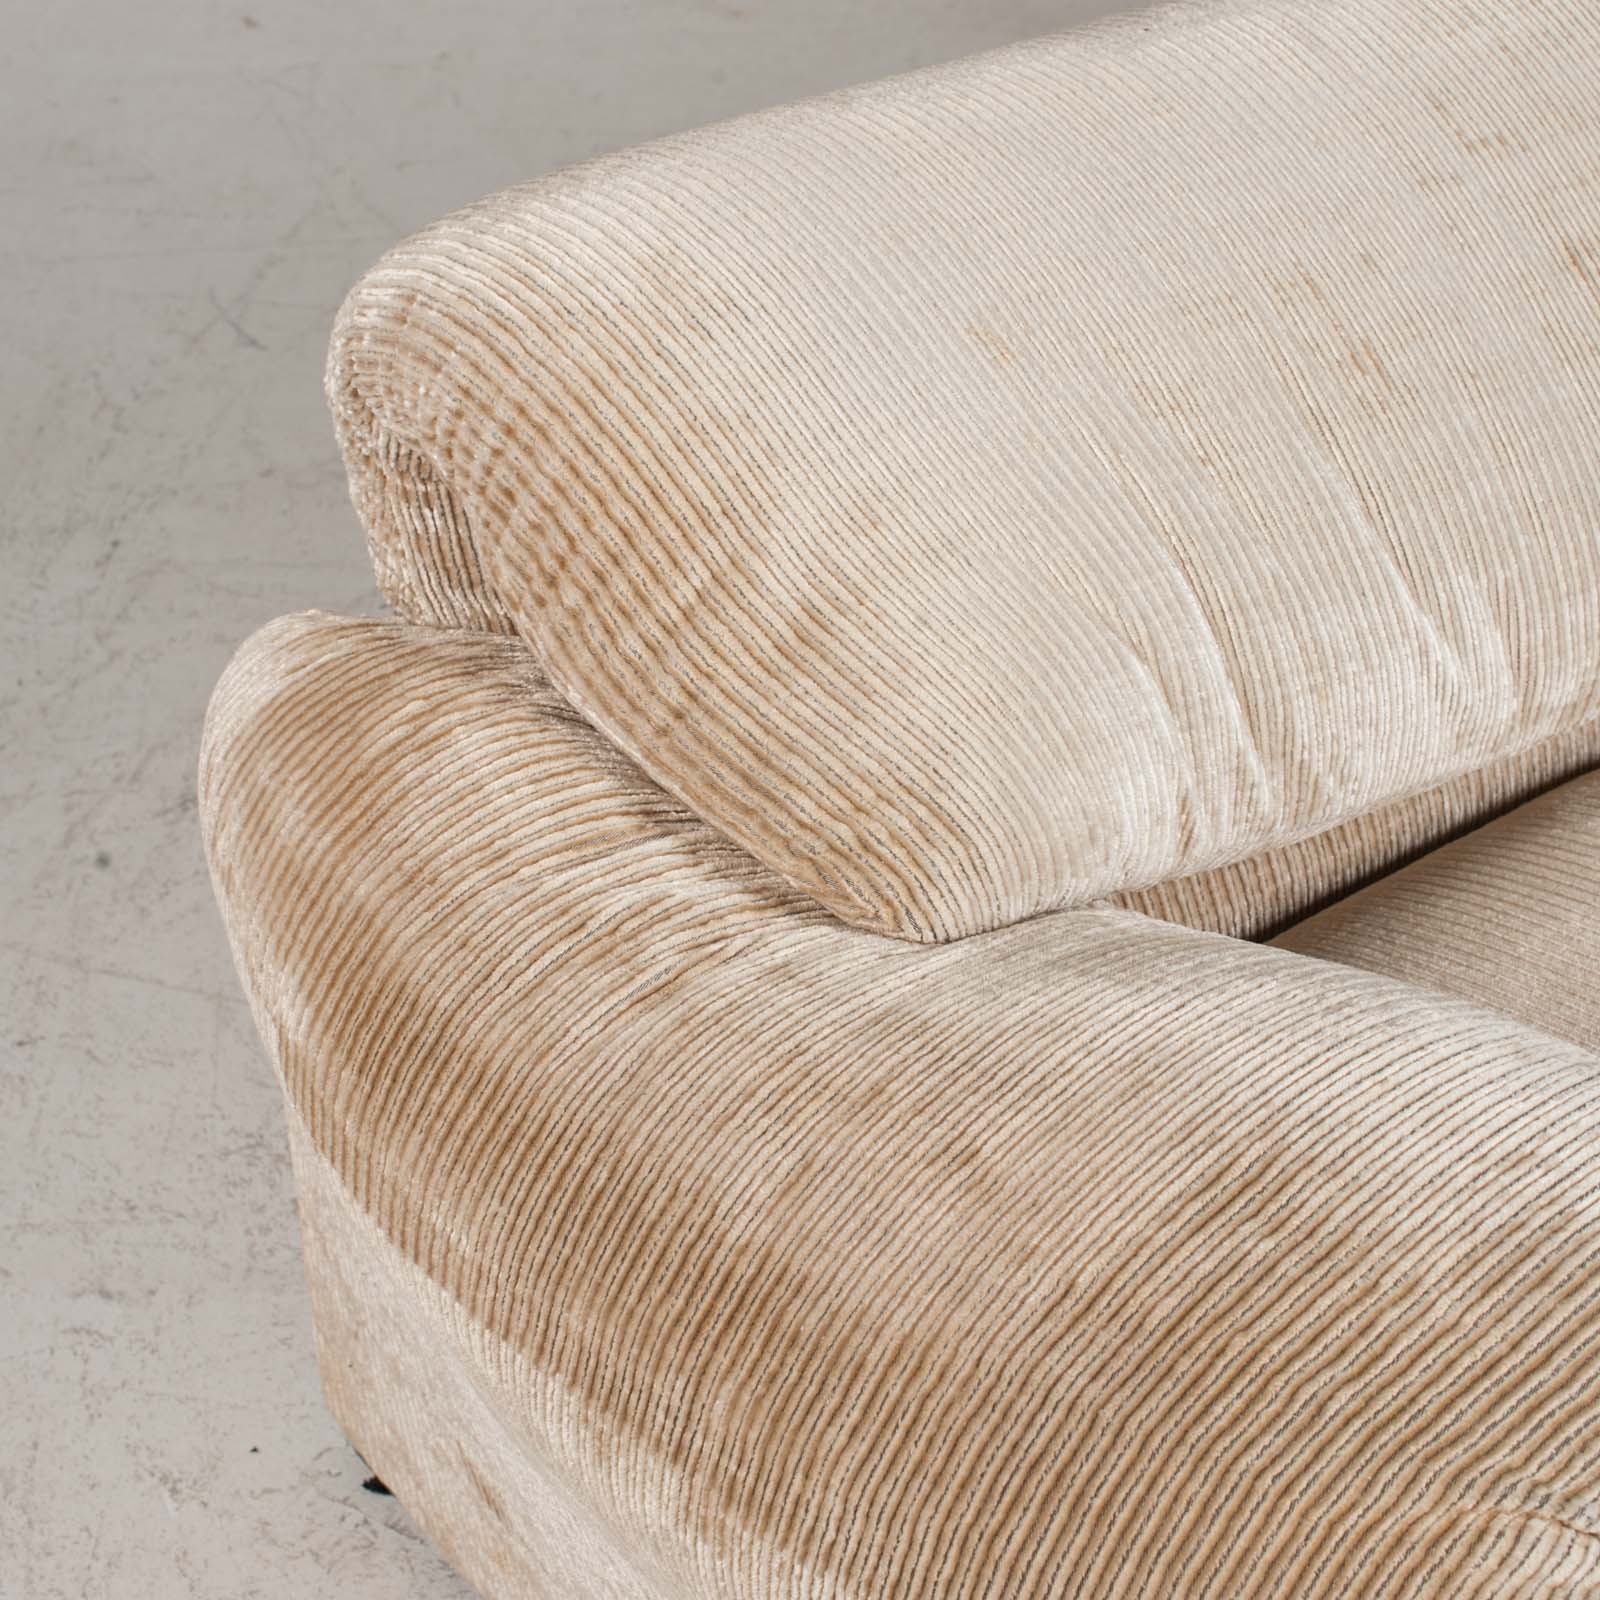 Maralunga 3 Seat Sofa By Vico Magistretti For Cassina In Original Upholstery 1970s Italy 012